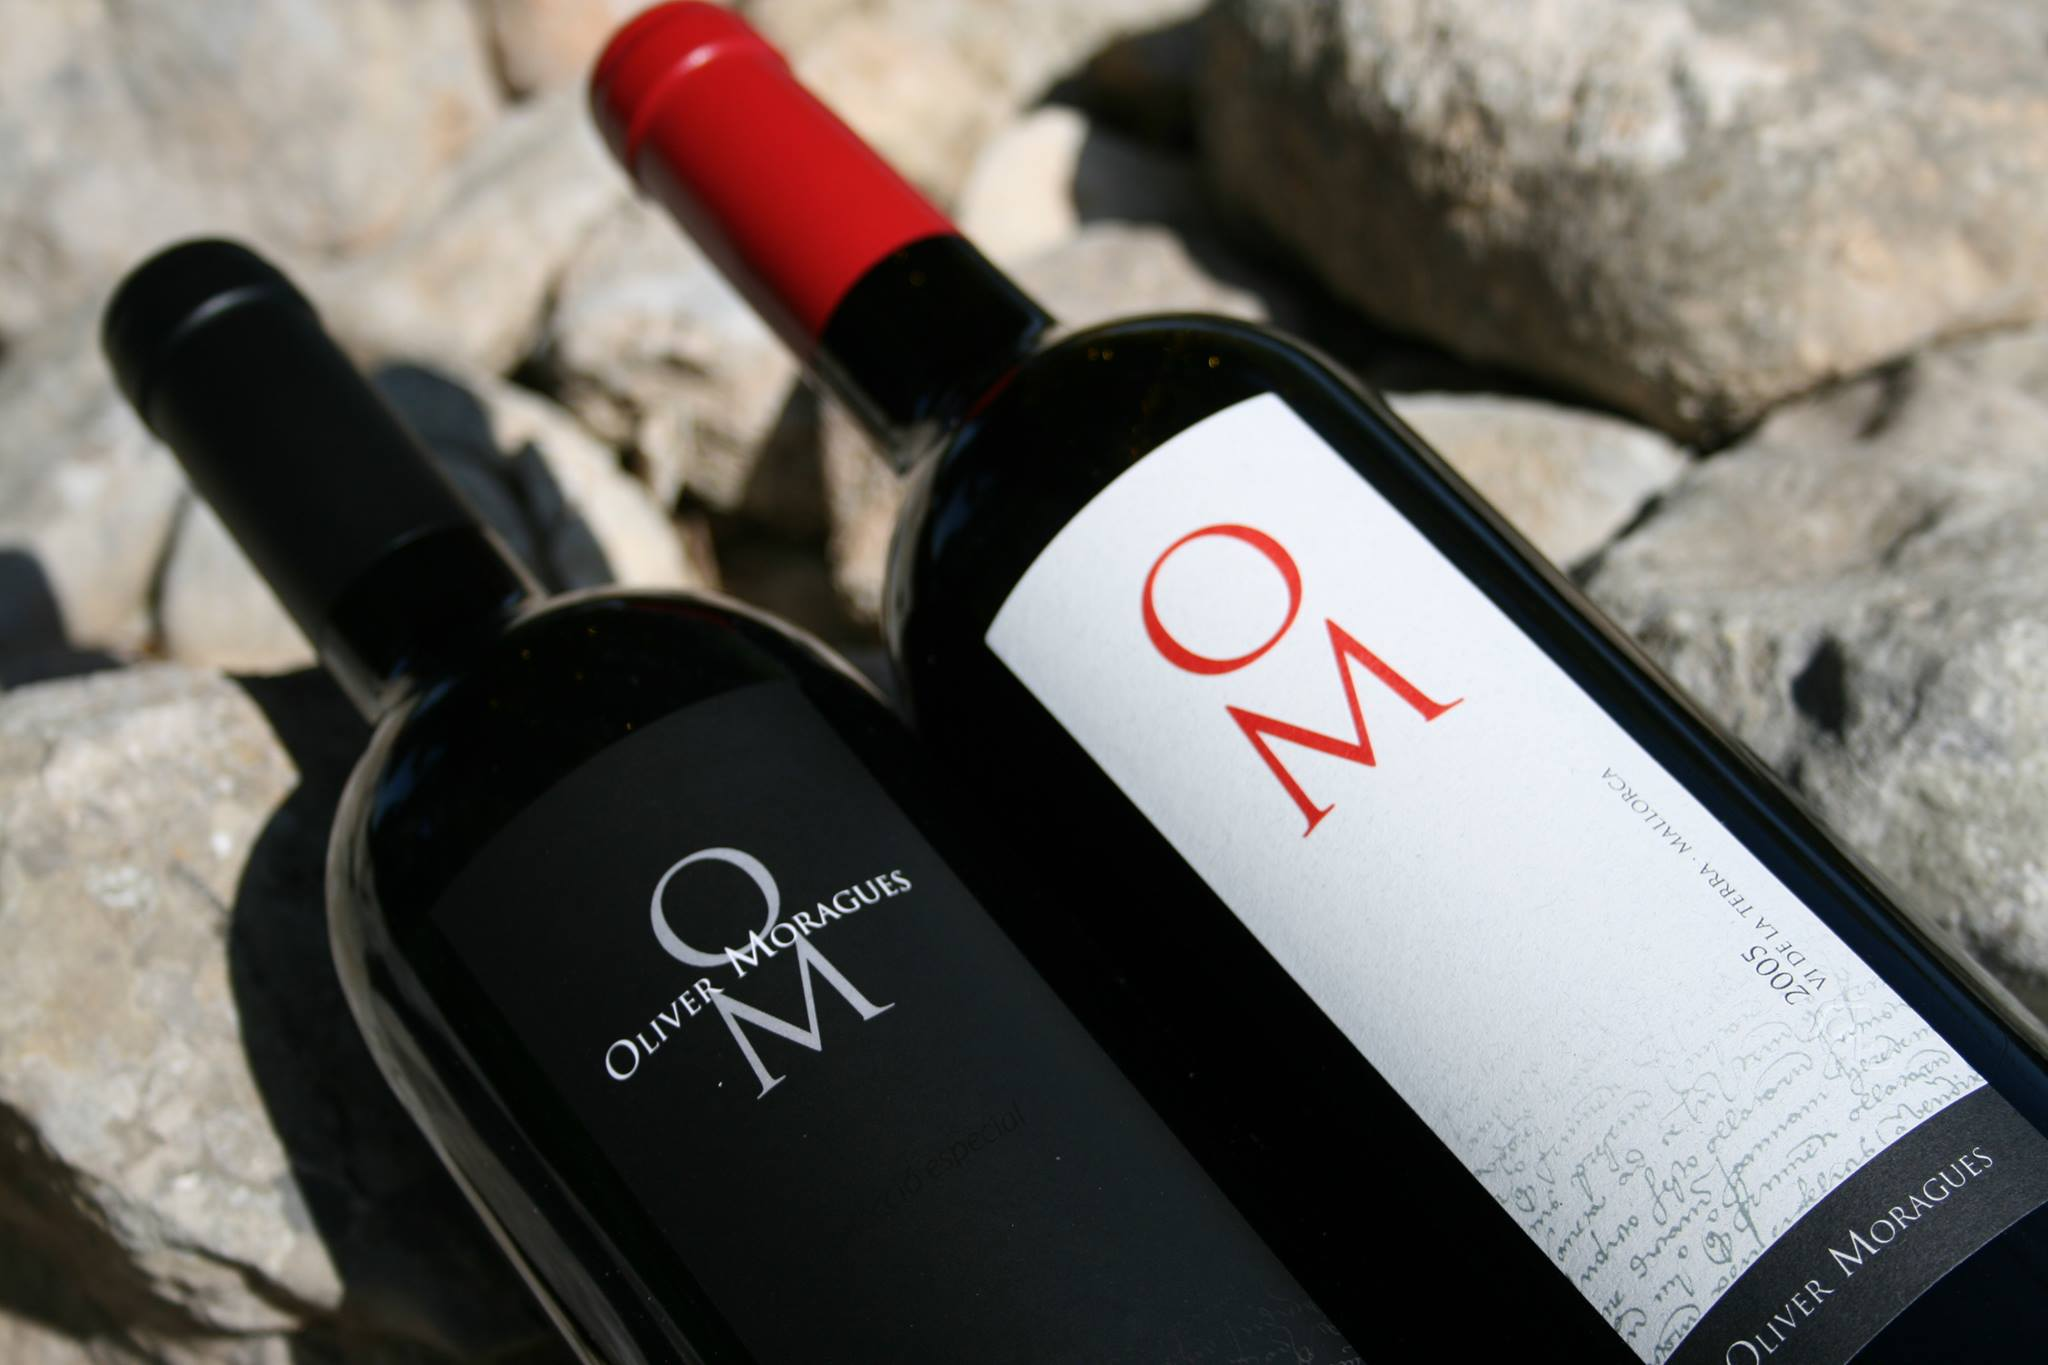 Mallorca Wine - Bodega Oliver Moragues - the OM wines